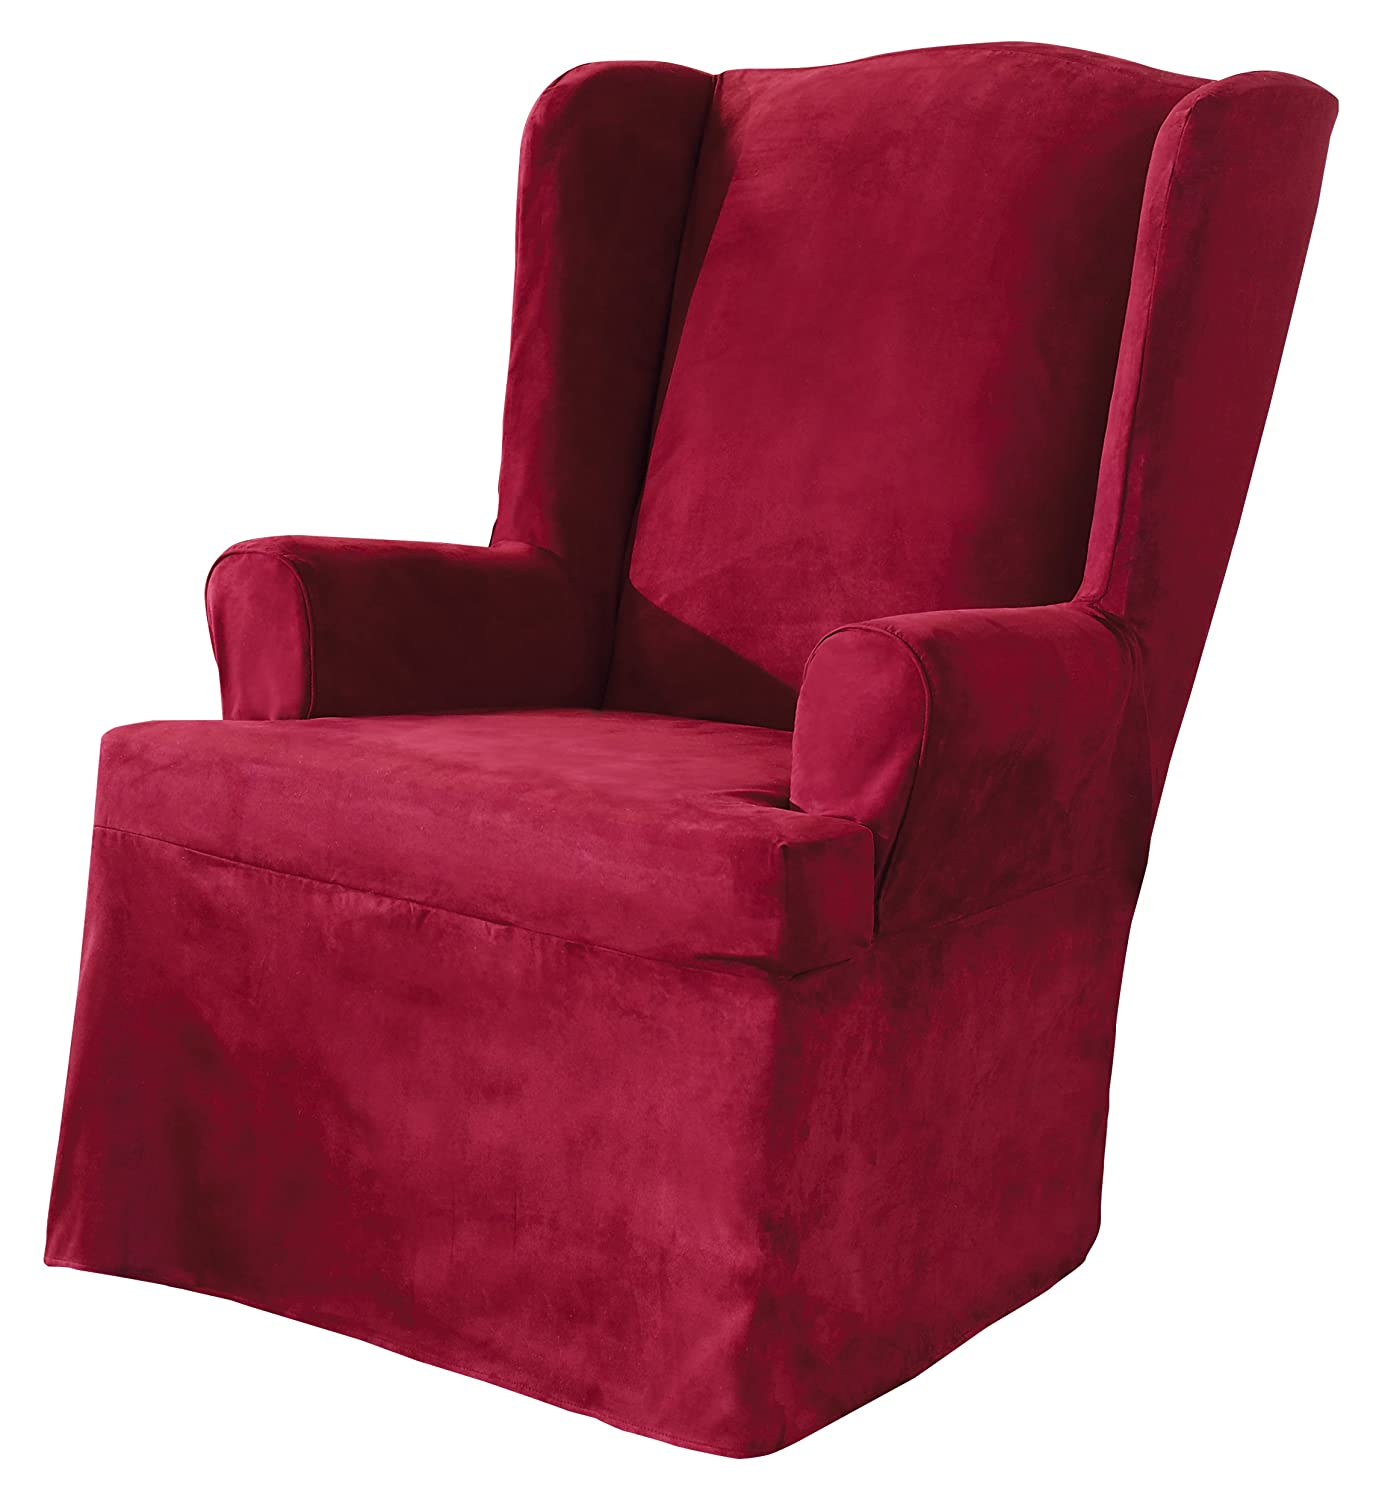 Attrayant Amazon.com: Sure Fit Soft Suede   Wing Chair Slipcover   Burgundy  (SF34520): Home U0026 Kitchen